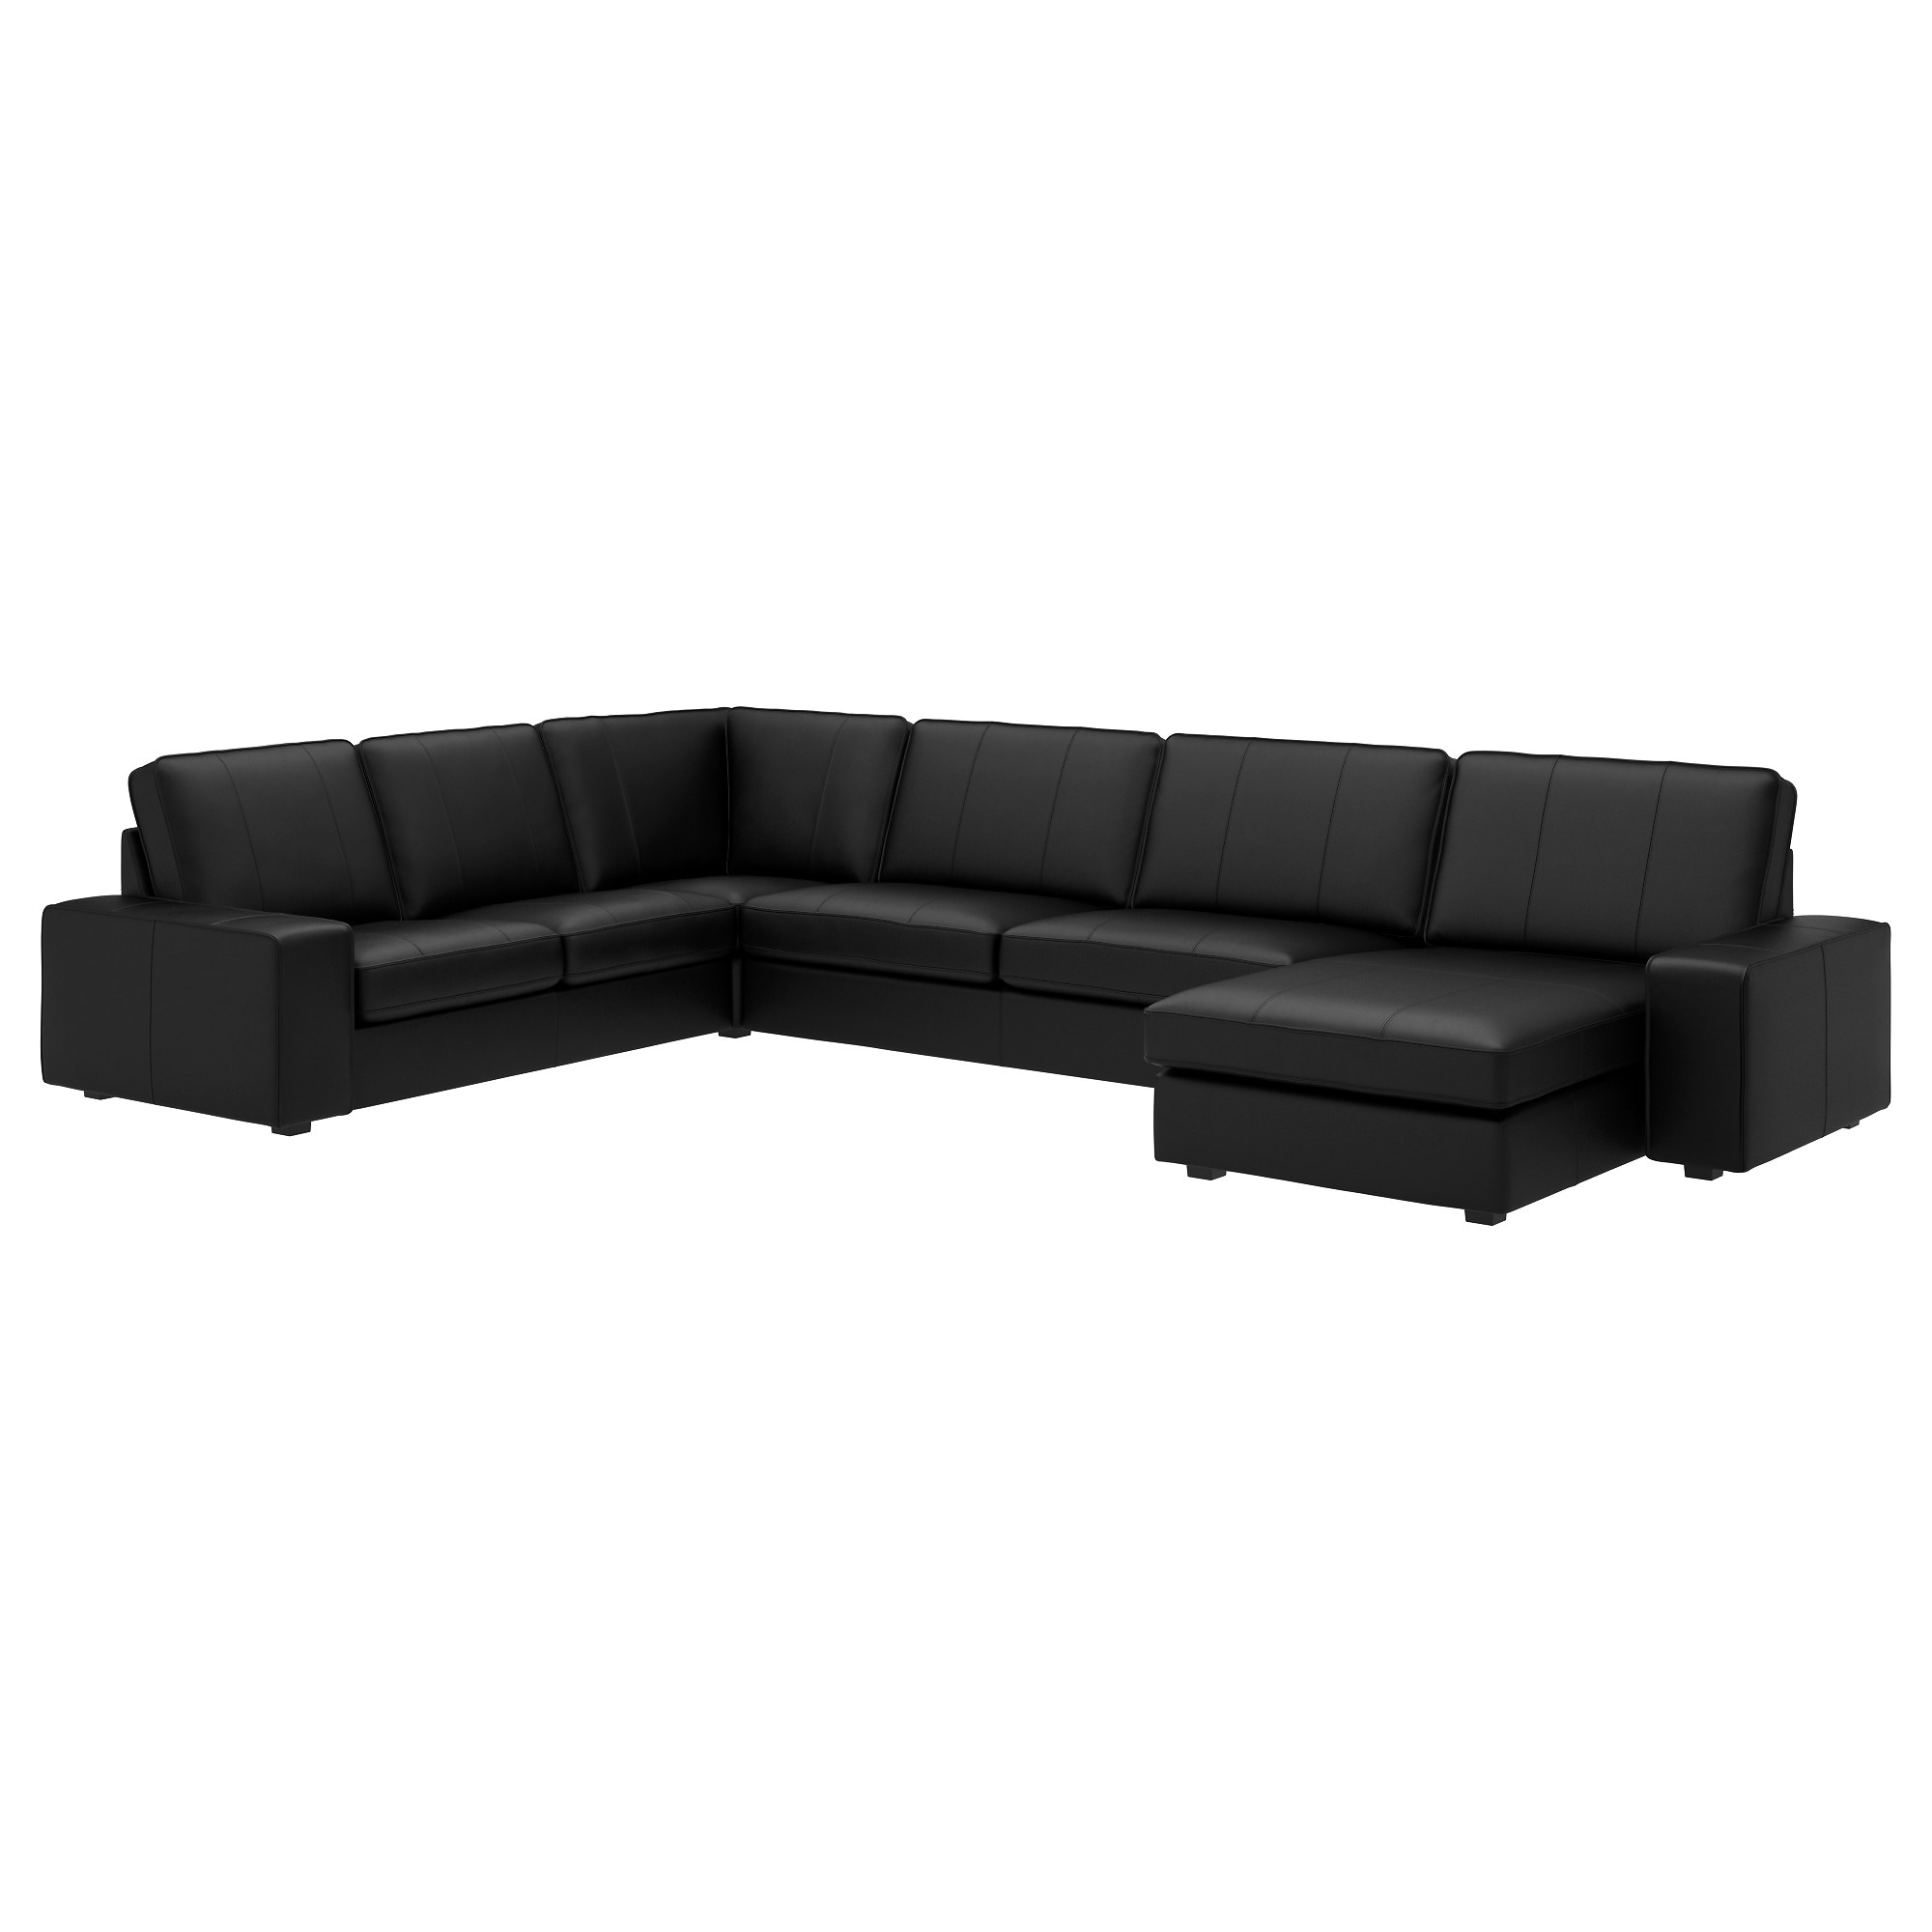 KIVIK Sectional, 5-seat - with chaise/Grann/Bomstad black - IKEA